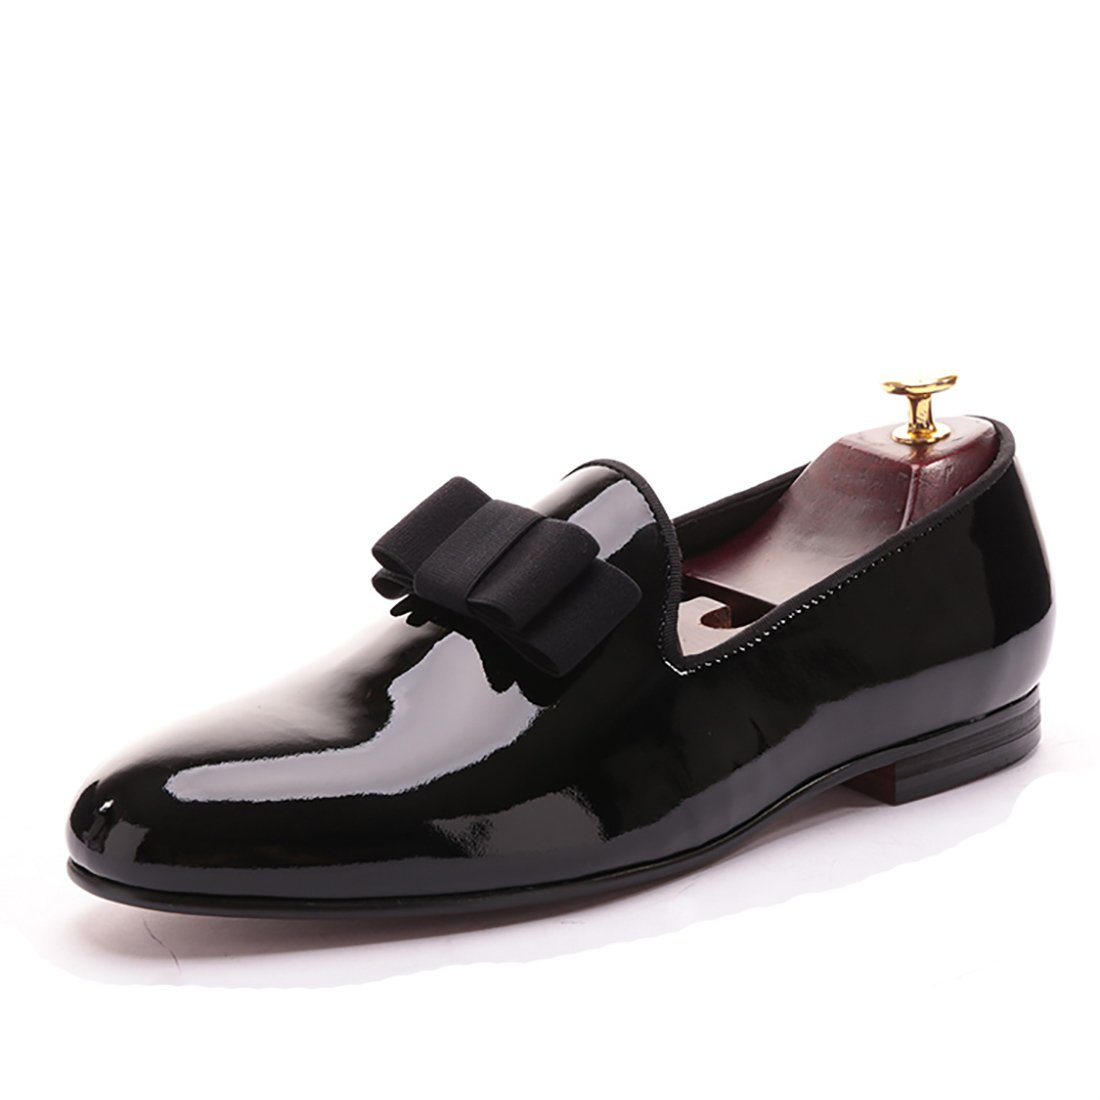 6ac1c16ed2 Amazon.com | HI&HANN Black Patent Leather Men Loafers with Black Bowtie Slip-on  Round Toes Smoking Slipper | Loafers & Slip-Ons